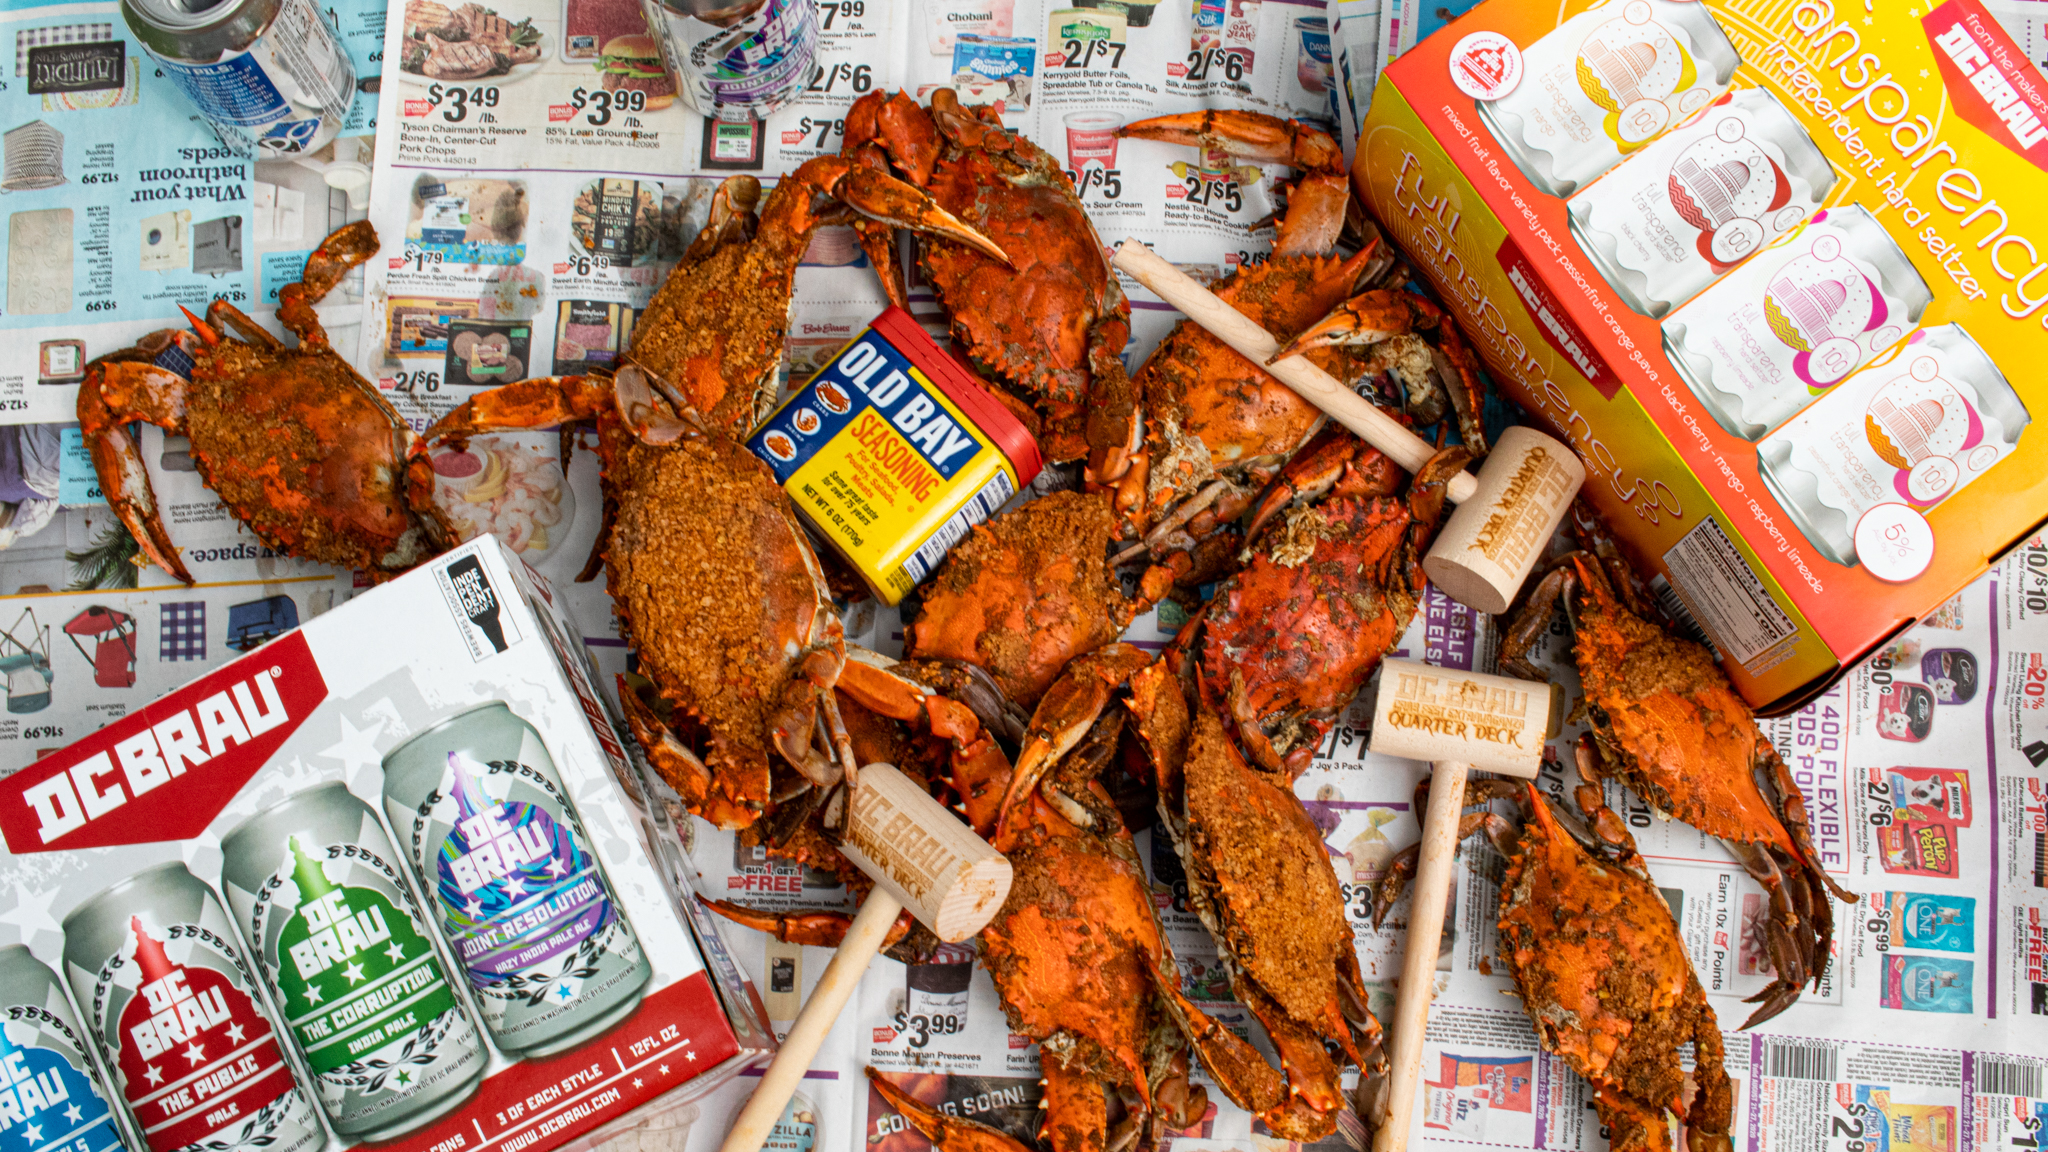 DC Brau and the Quarterdeck are offering beer and crabs on the summer holiday. Photo courtesy of DC Brau.